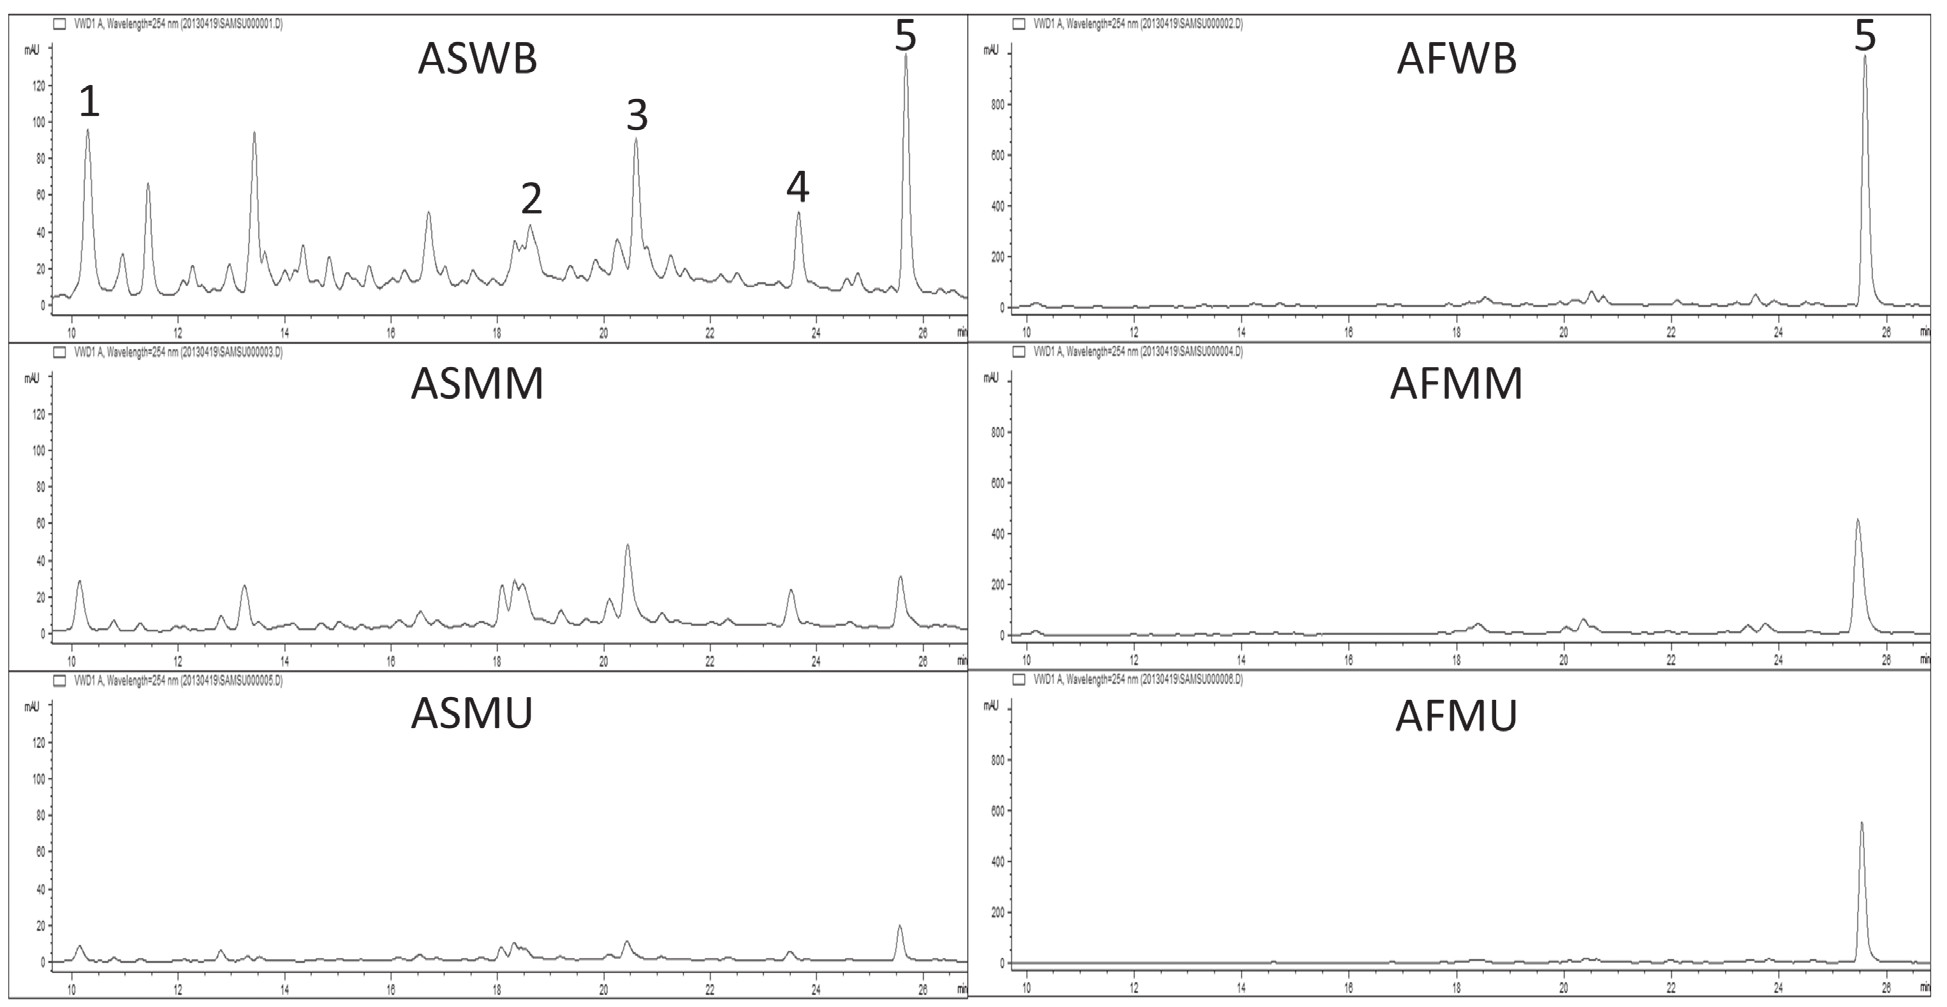 Fig. 1. Compound determined by HPLC-DAD (software ChemStation for LC 3D Systems, Agilent Technologies) and HPLC-MS (LC/MSD Trap Software 5.3, Bruker Daltonik 6 mbH) in different extracts. Scale of Y axis for stem extracts is 0–140 mAU and for flower plus leave extracts 0–1000 mAU  AFMM – methanolic flowers plus leaves extract obtained by microwave extraction, AFMU – methanolic flowers plus leaves extract obtained by ultrasonic extraction, AFWB – aqueous flowers plus extract obtained by boiling, AFWM – aqueous flower and leaves extract obtained by microwave extraction, ASMM – methanolic stems extract obtained by microwave extraction, ASMU – methanolic stems extract obtained by ultrasonic extraction, ASWB – aqueous stems extract obtained by boiling